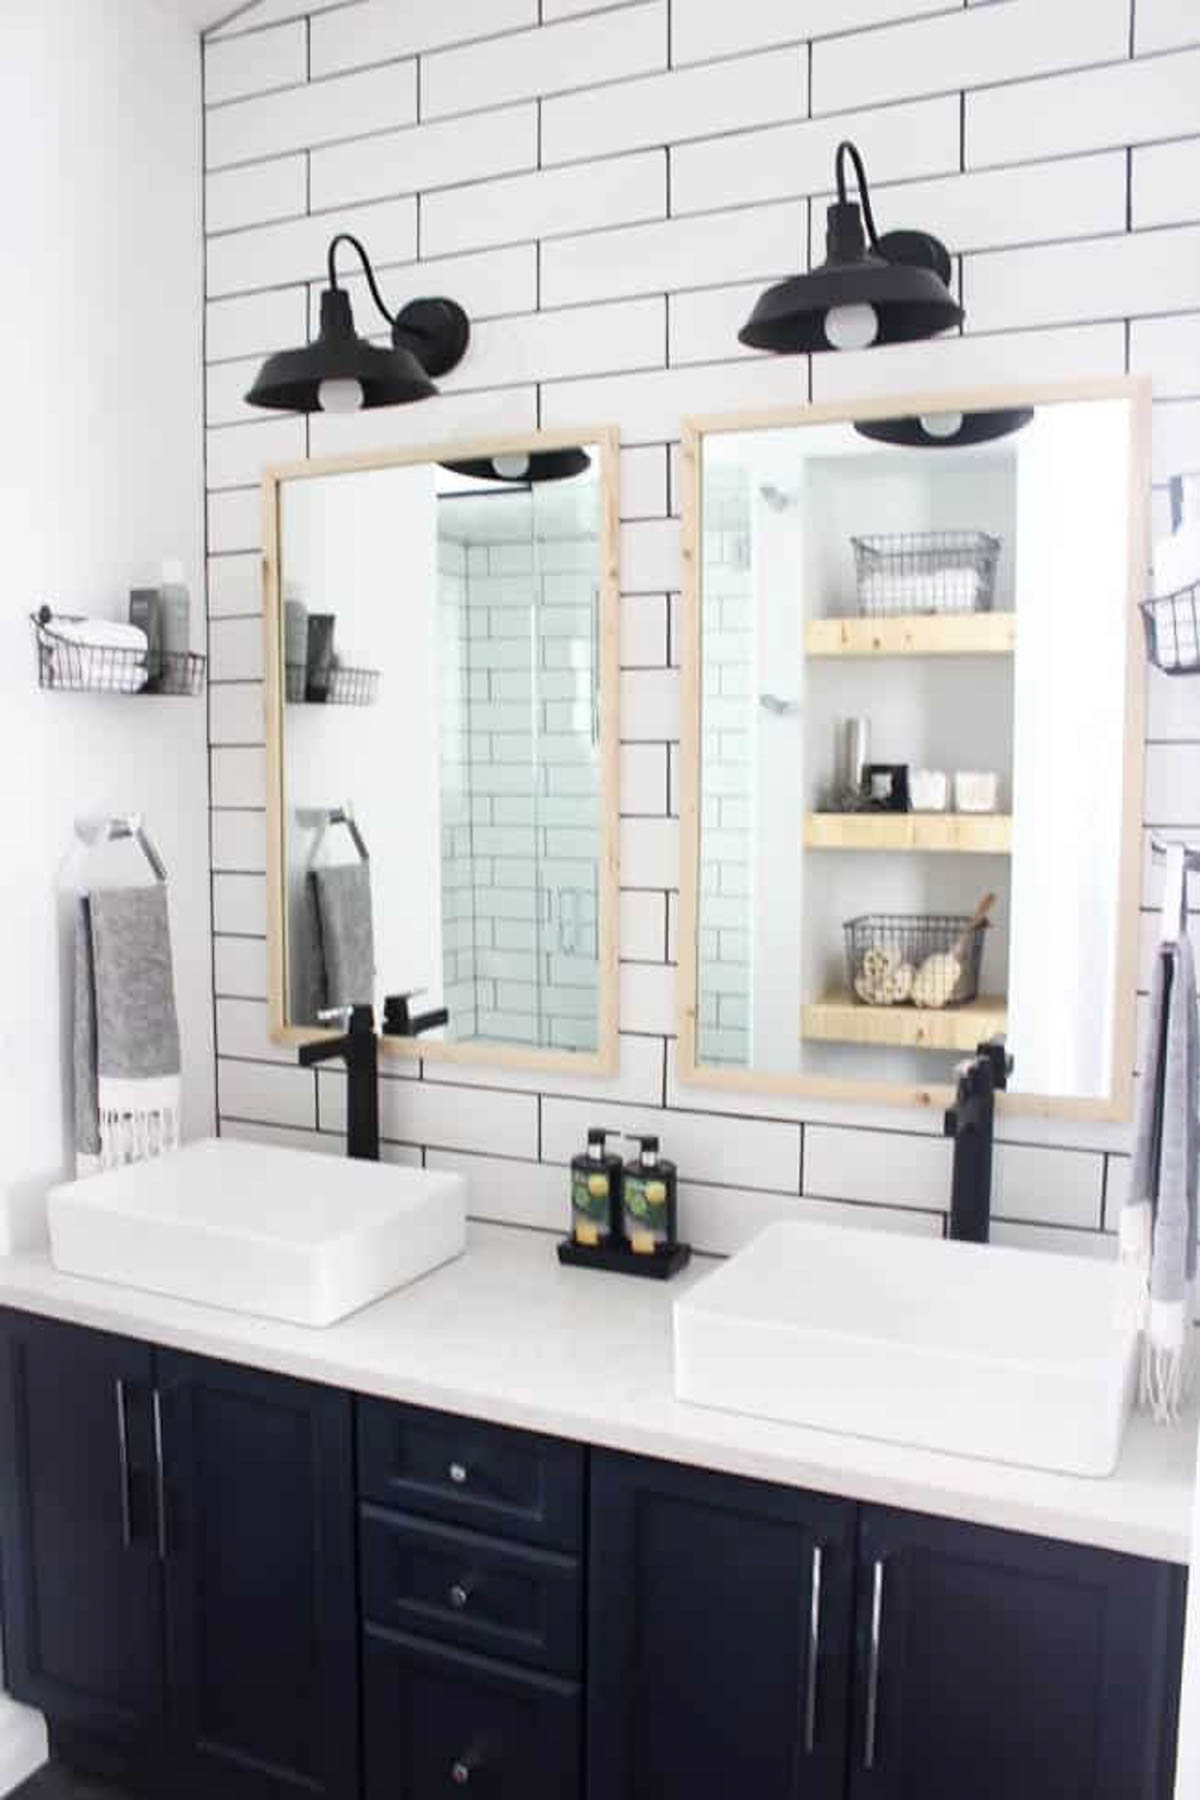 Renovated bathroom with wood-framed mirrors and subway tiles